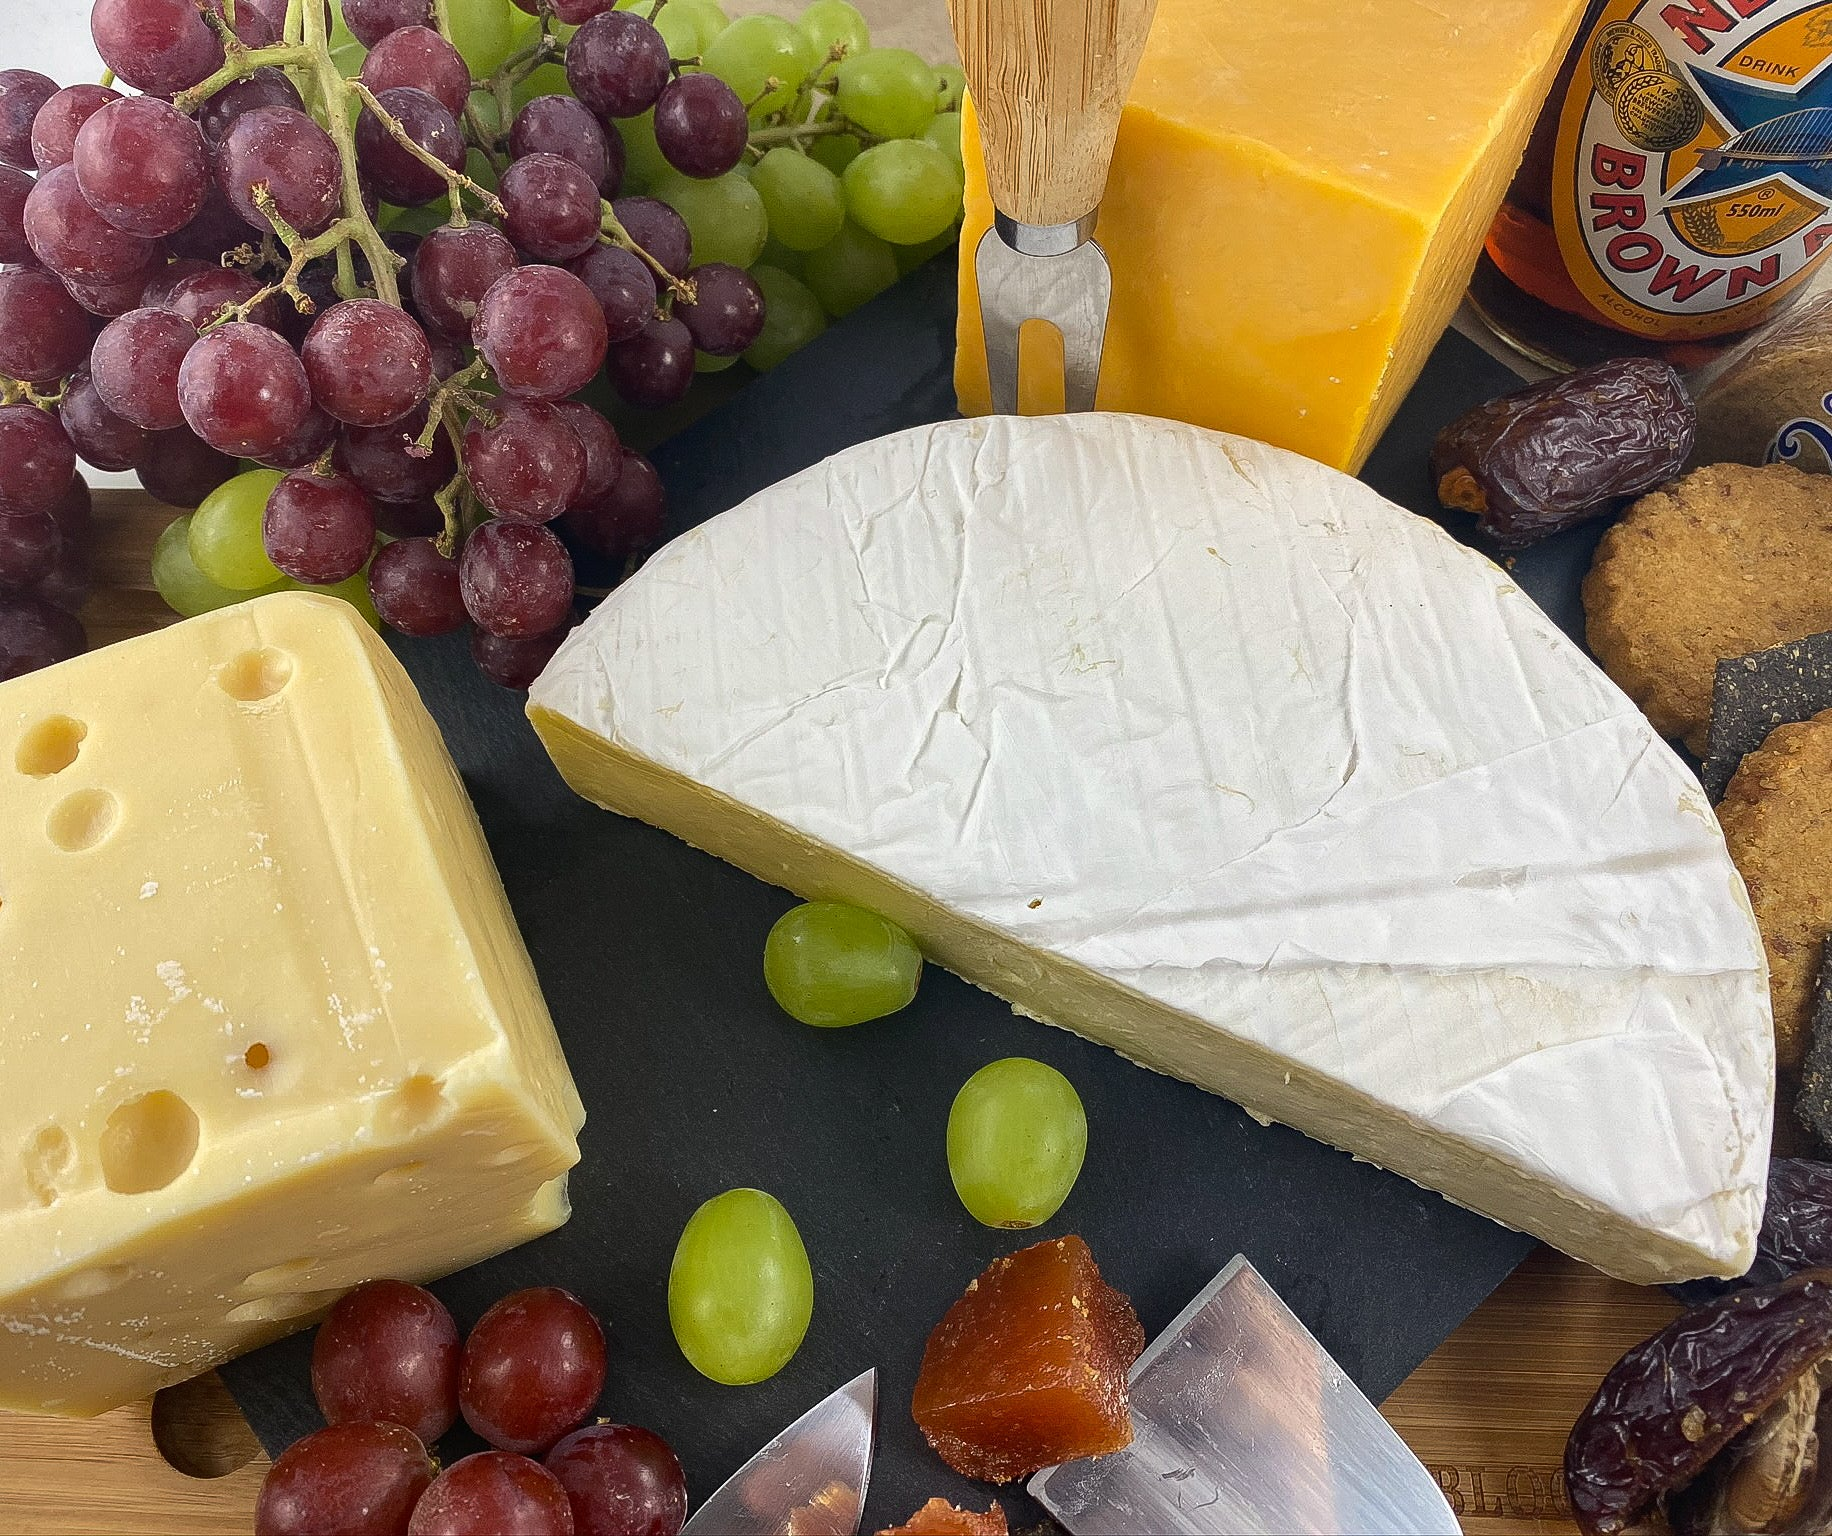 Matthews Cheese - Cheese essentials! Cheddar, Brie, Emmental or Mozzarella